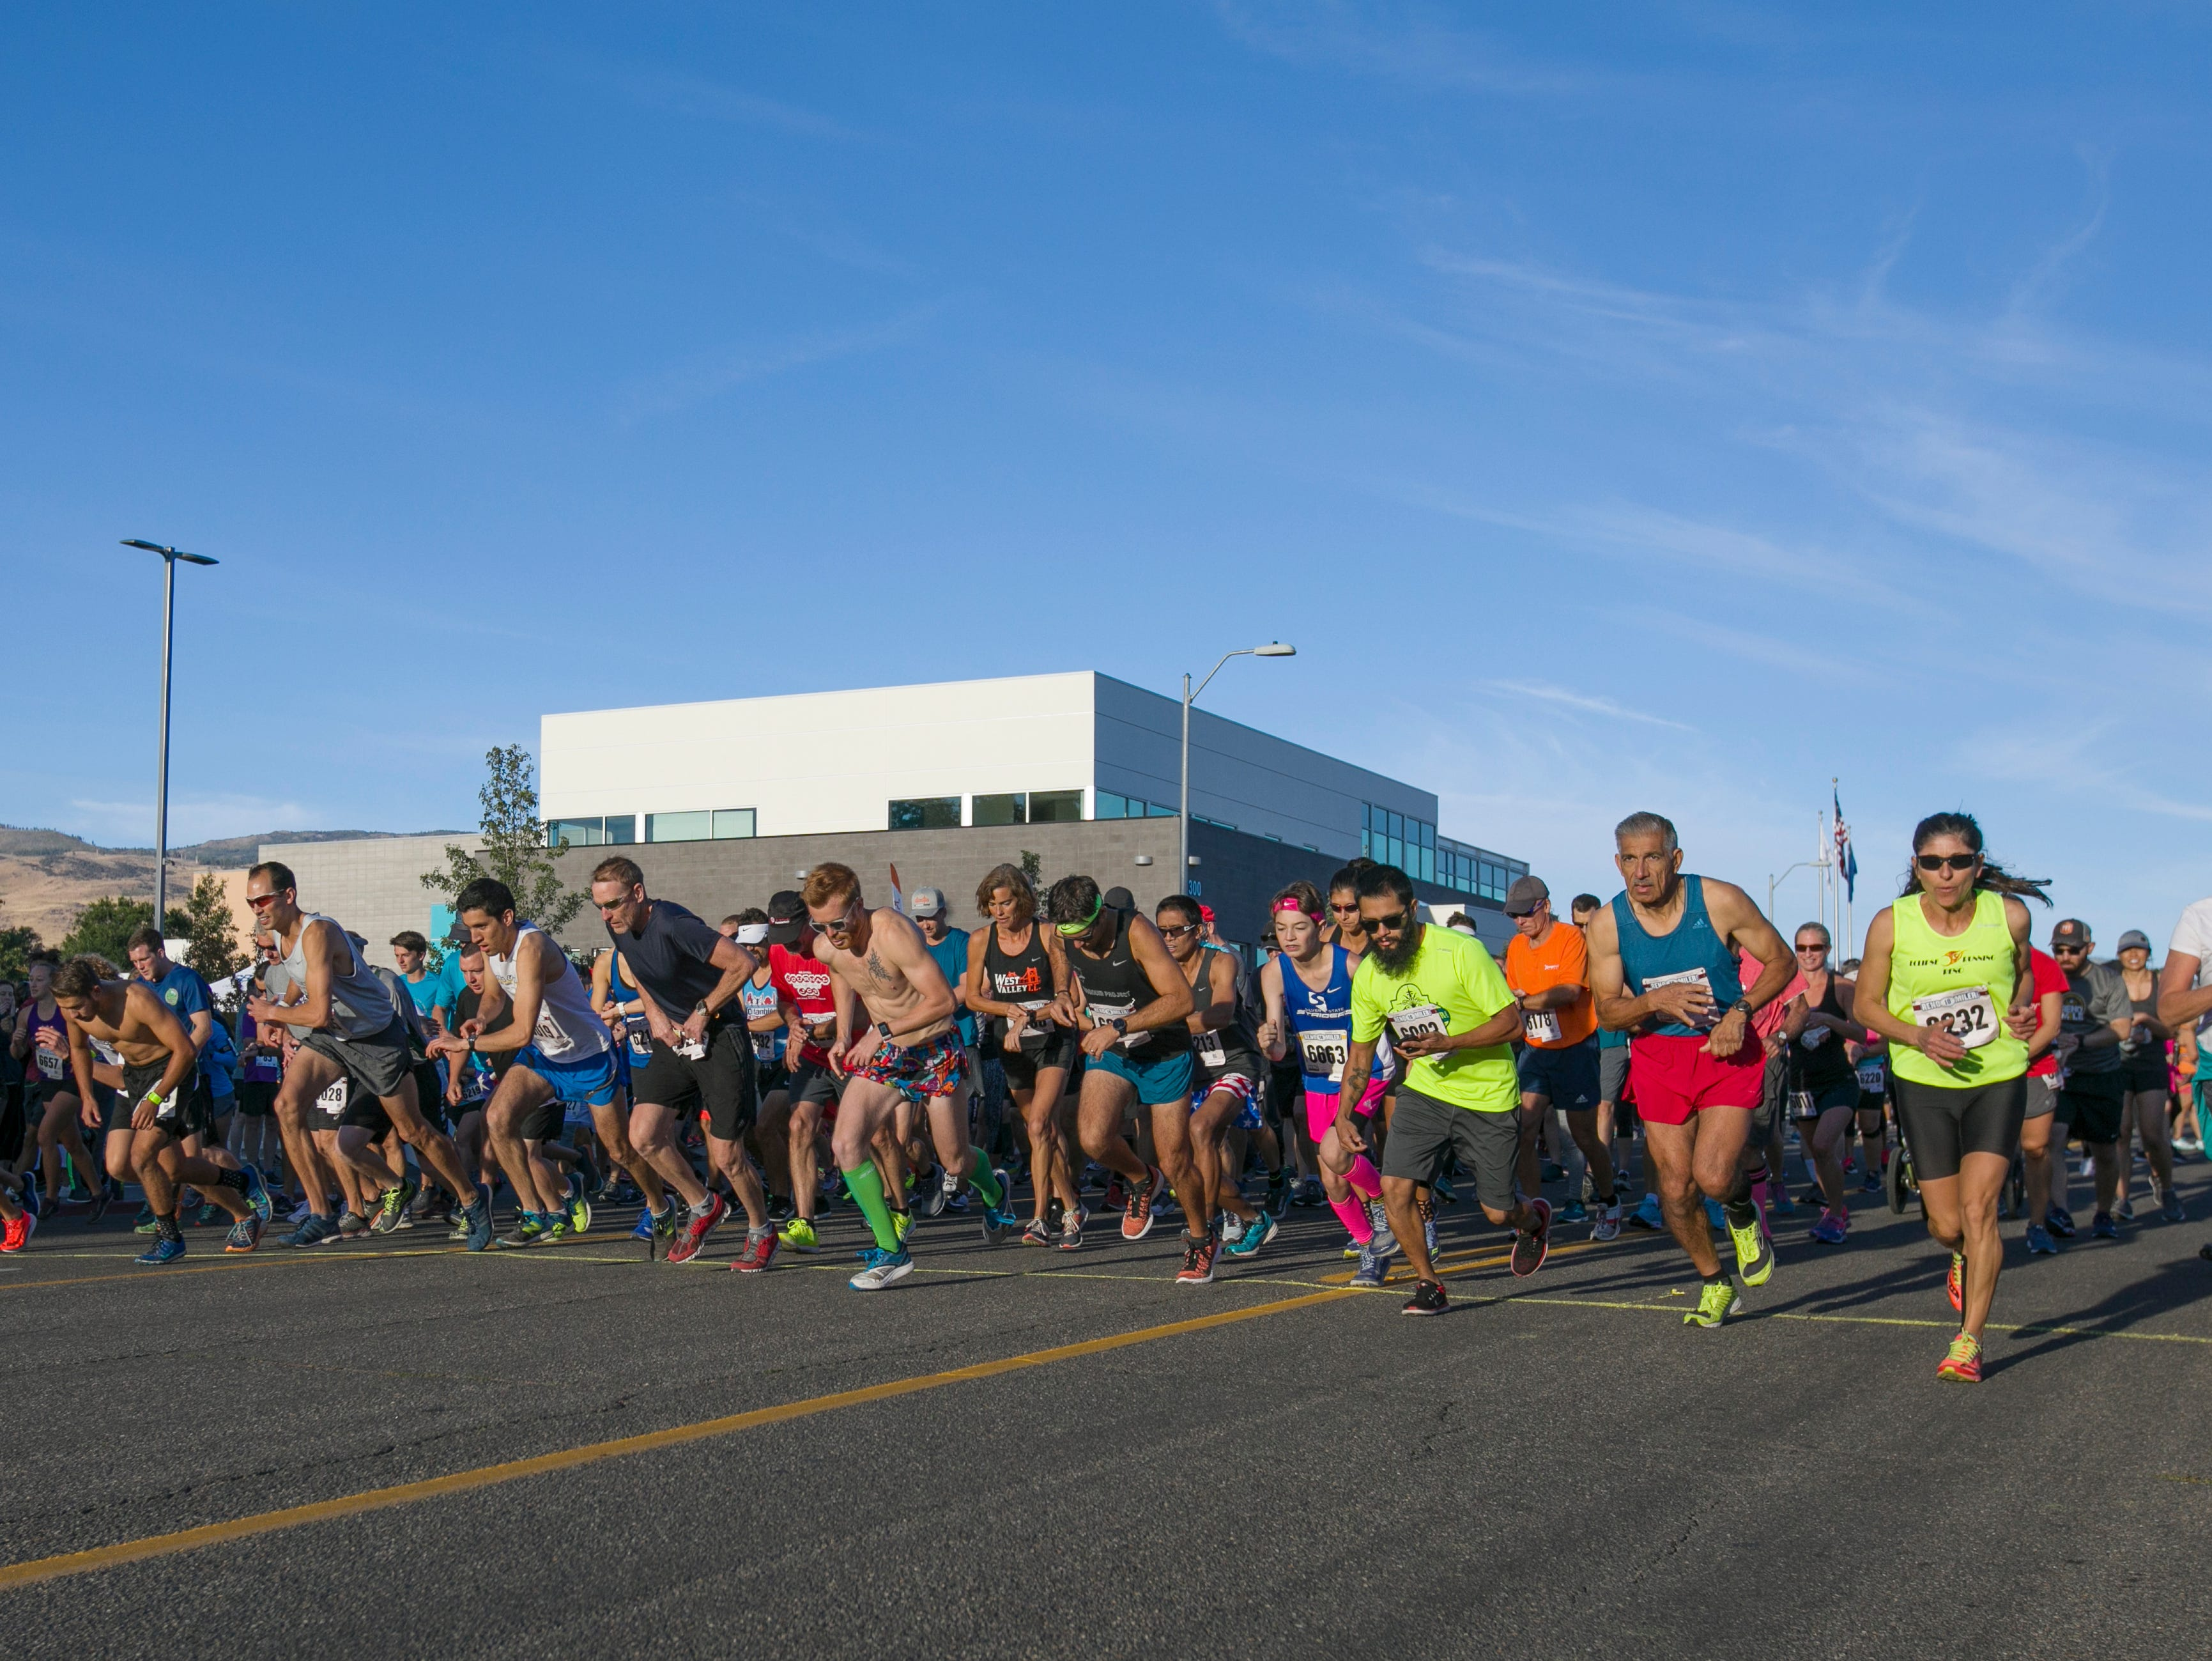 A photograph taken during the 50th Annual Journal Jog in Reno, Nevada on Sunday, September 9, 2018.